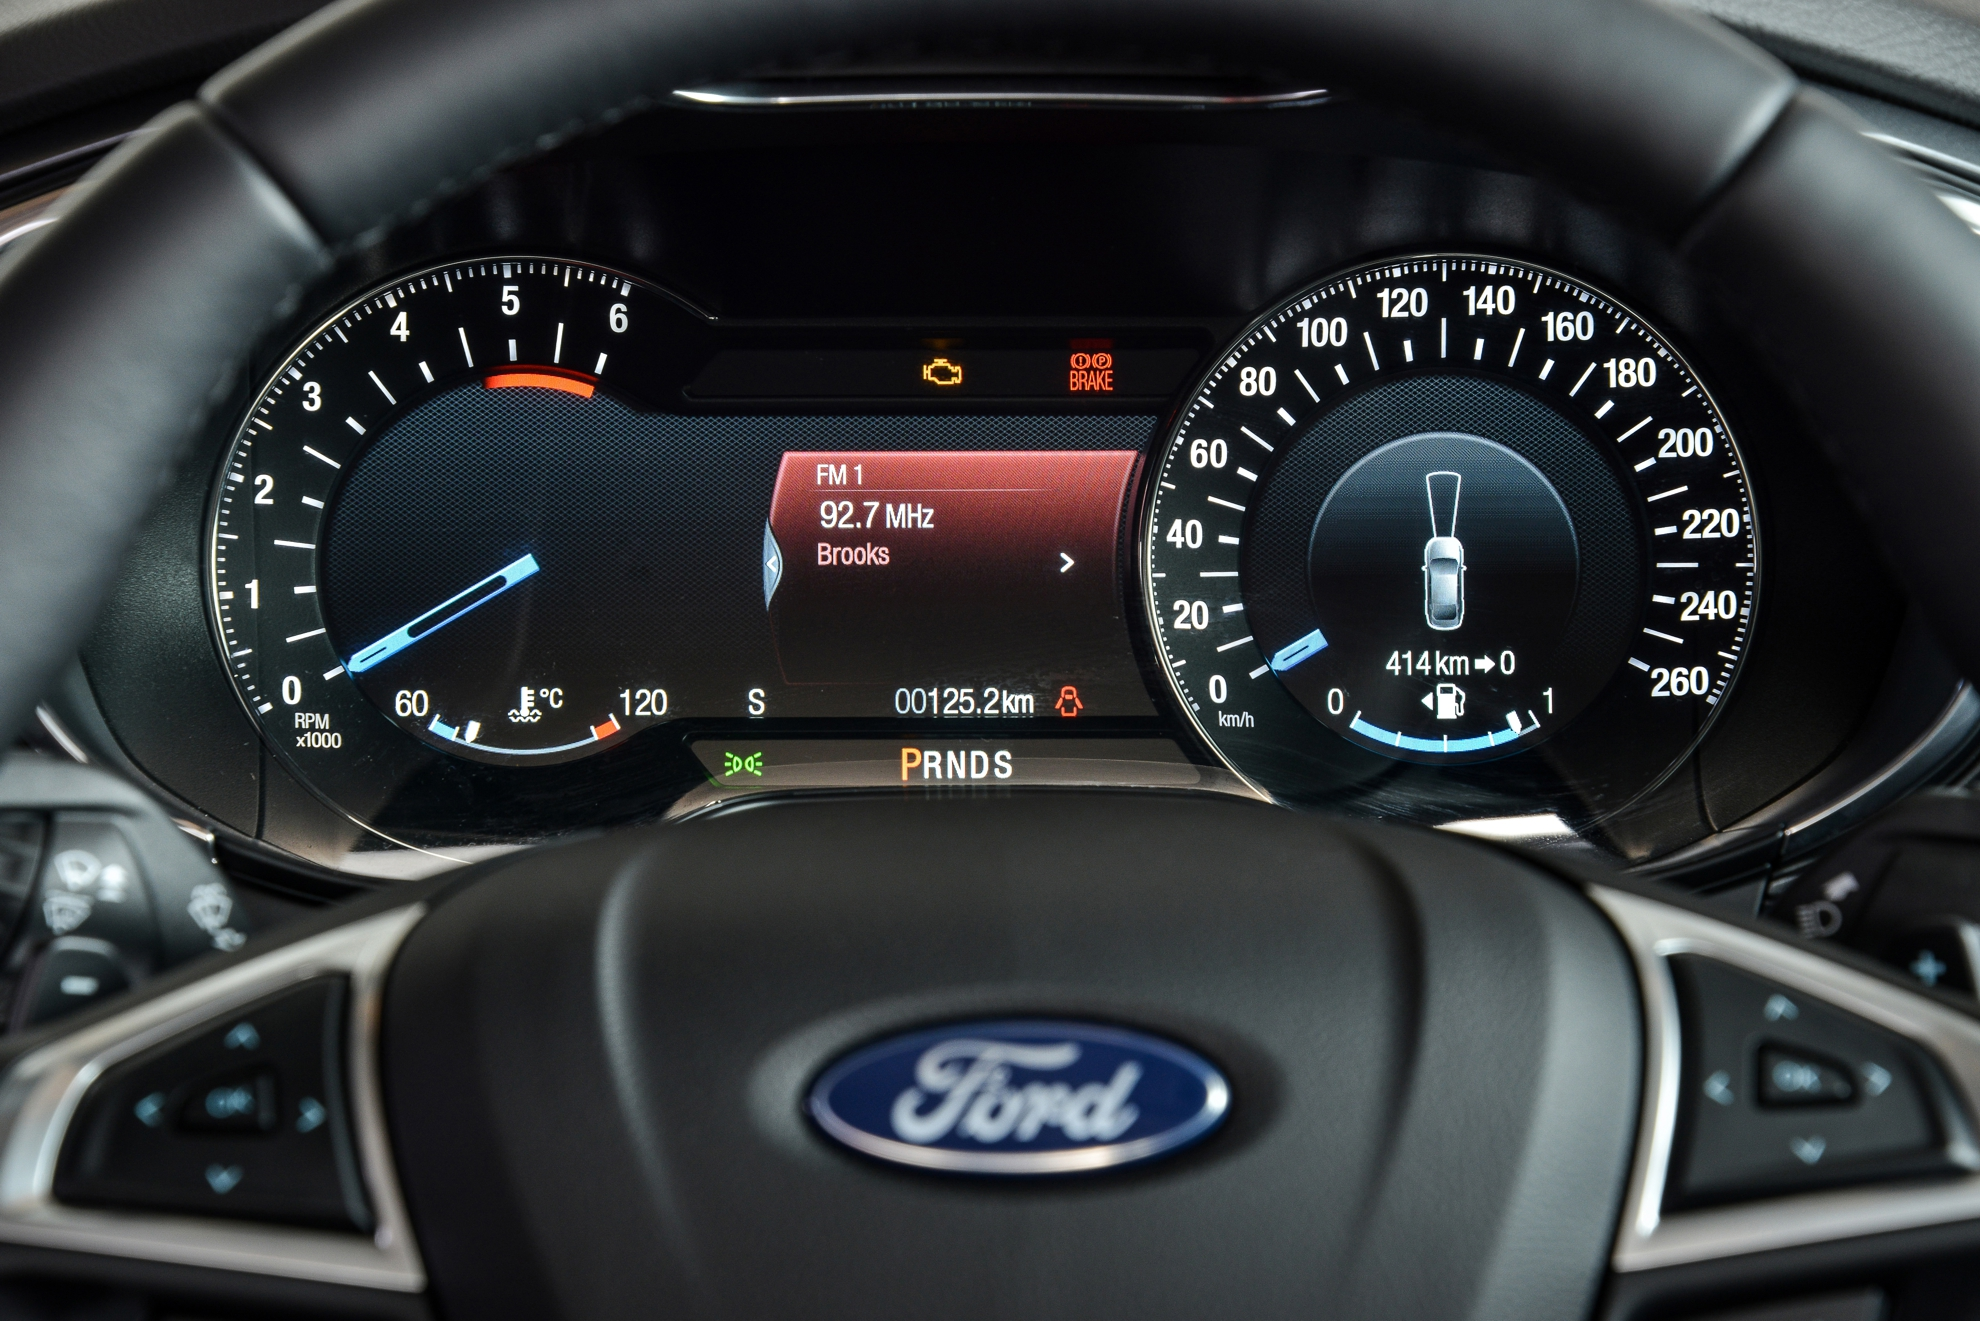 Ford-Fusion-Dashboard